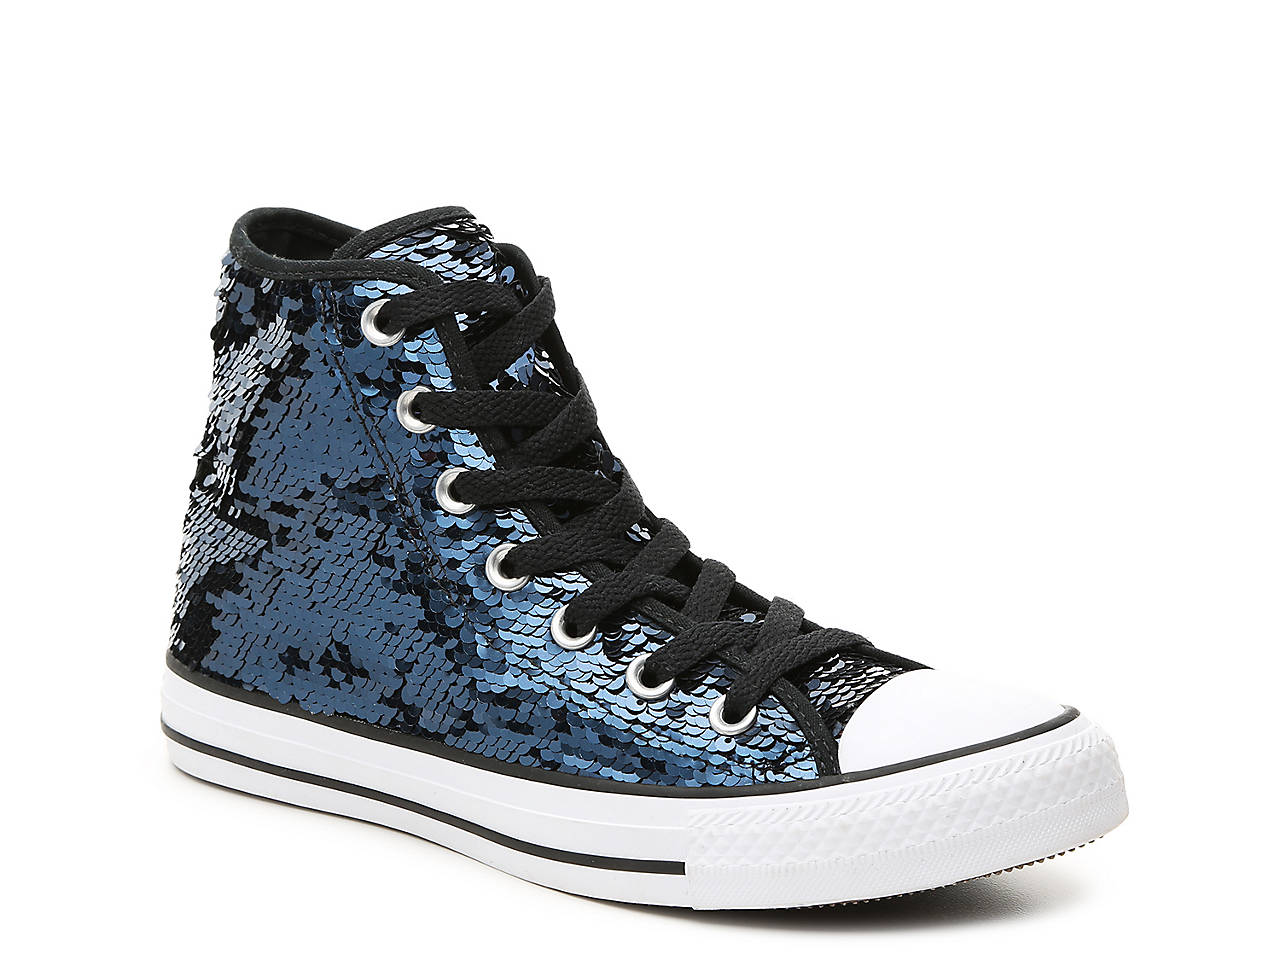 Converse Women's Chuck taylor All Star Sequin High Top Sneakers Z3hKAhf3C